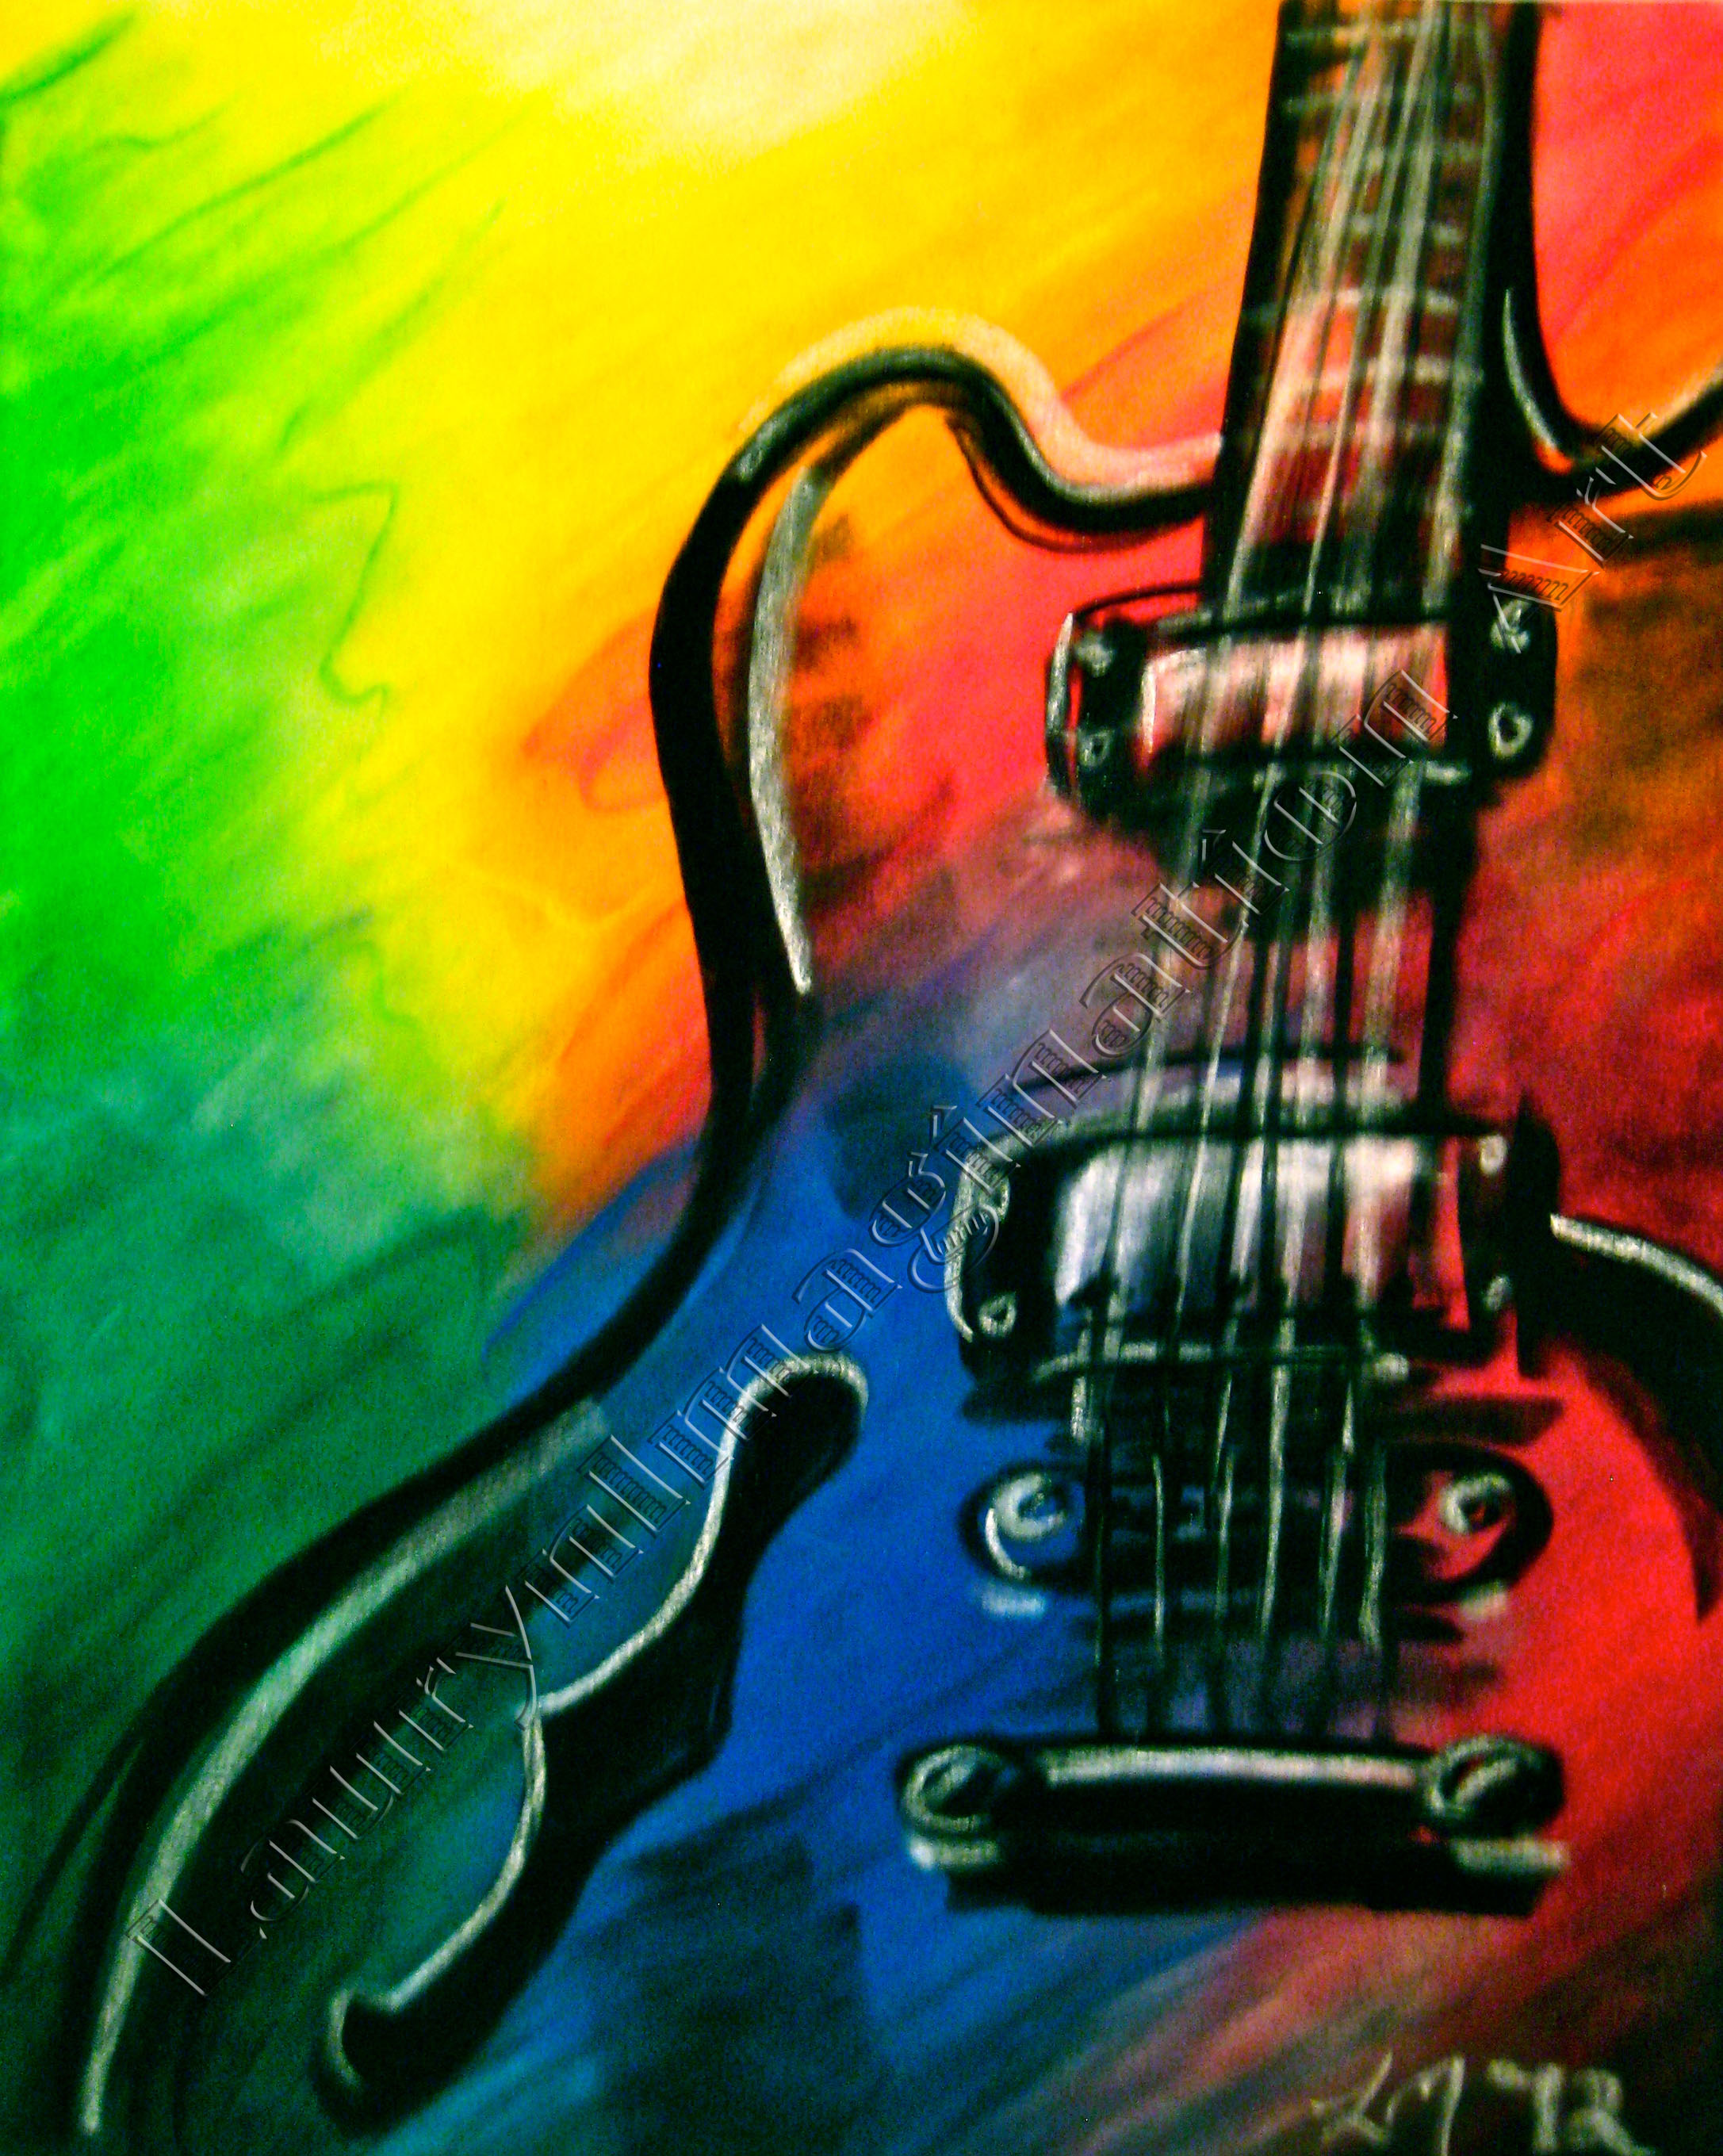 Abstract guitar vibrant colors chalk pastel by lauryn medeiros